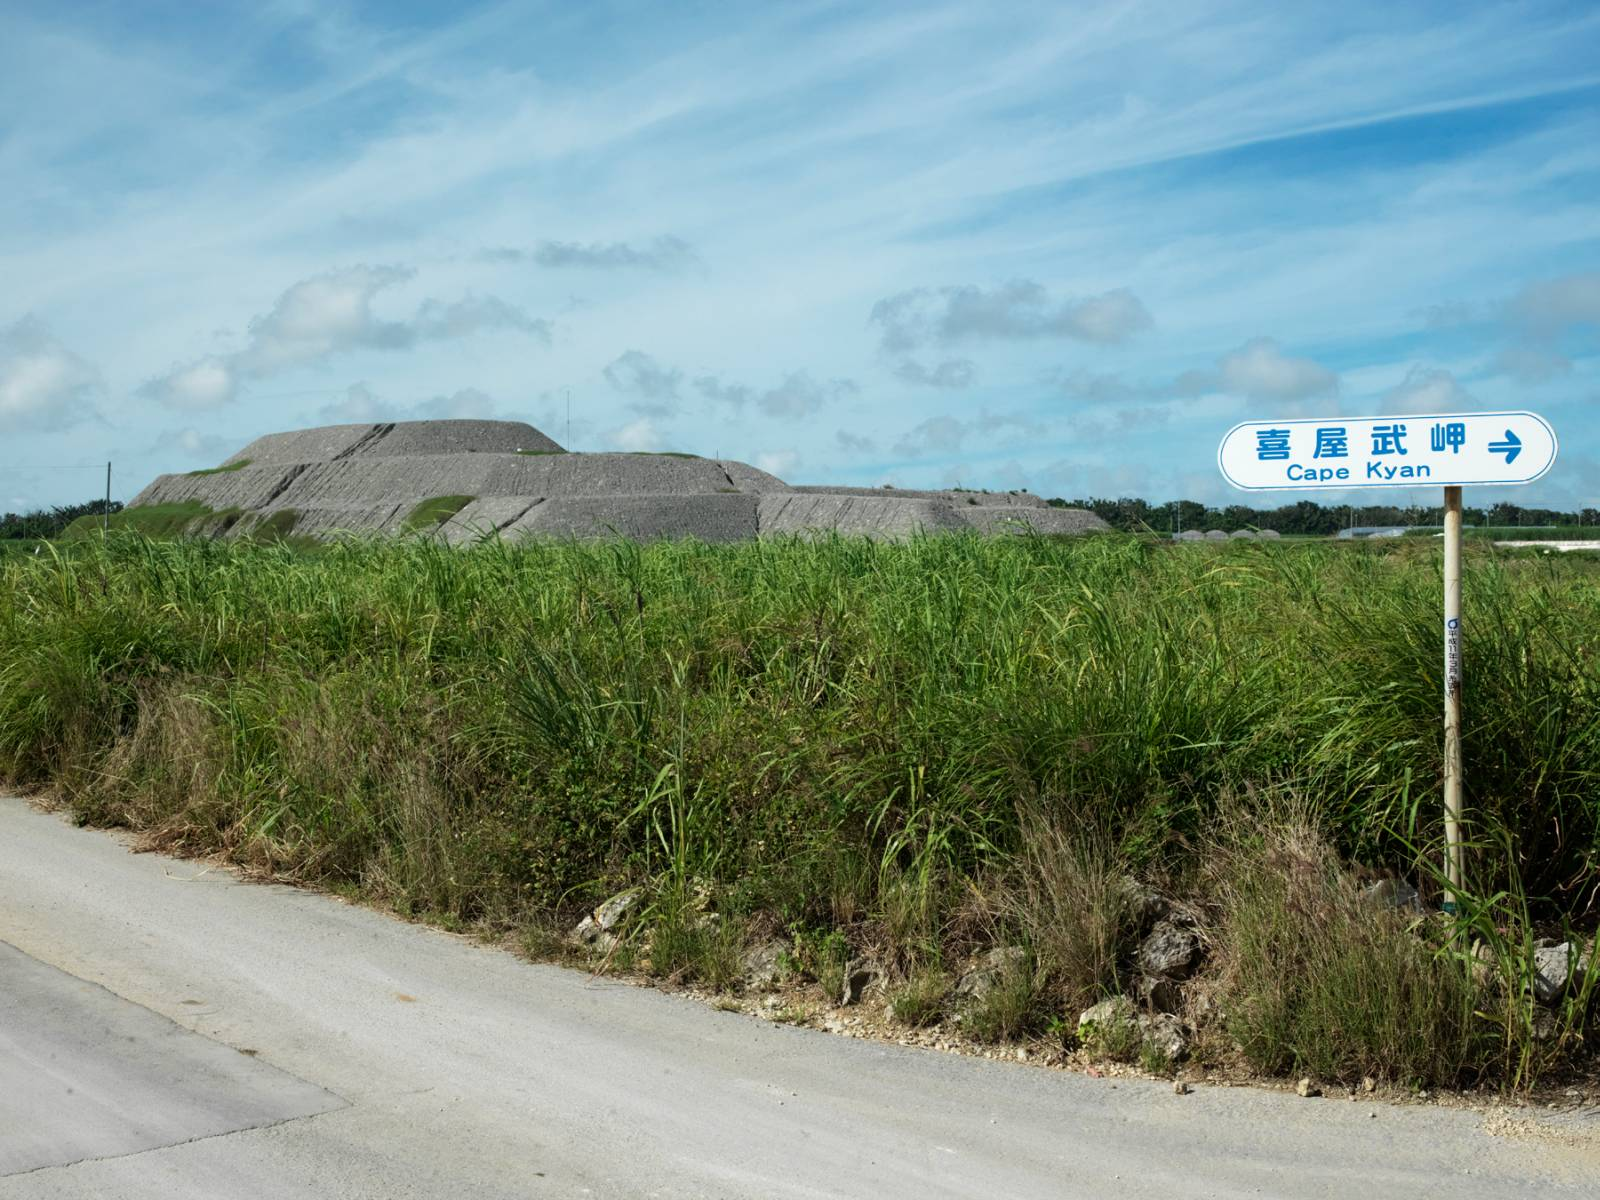 Itoman, June 14, 2013: A sand palace and a sign for a cape where a mass suicide occurred on the site of a fierce wartime battle